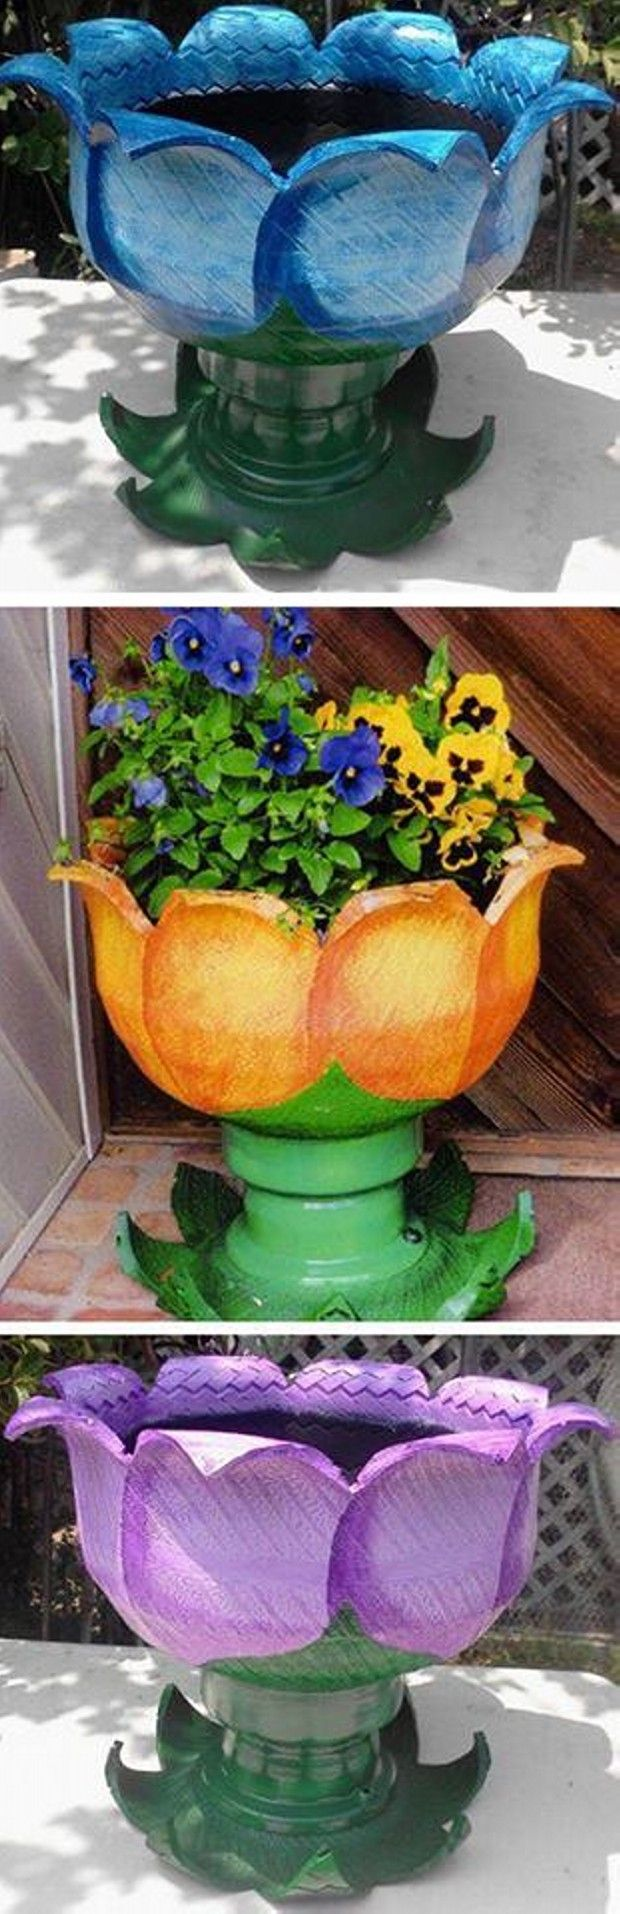 Garden decor with tyres  Need fantastic suggestions about arts and crafts Head out to my